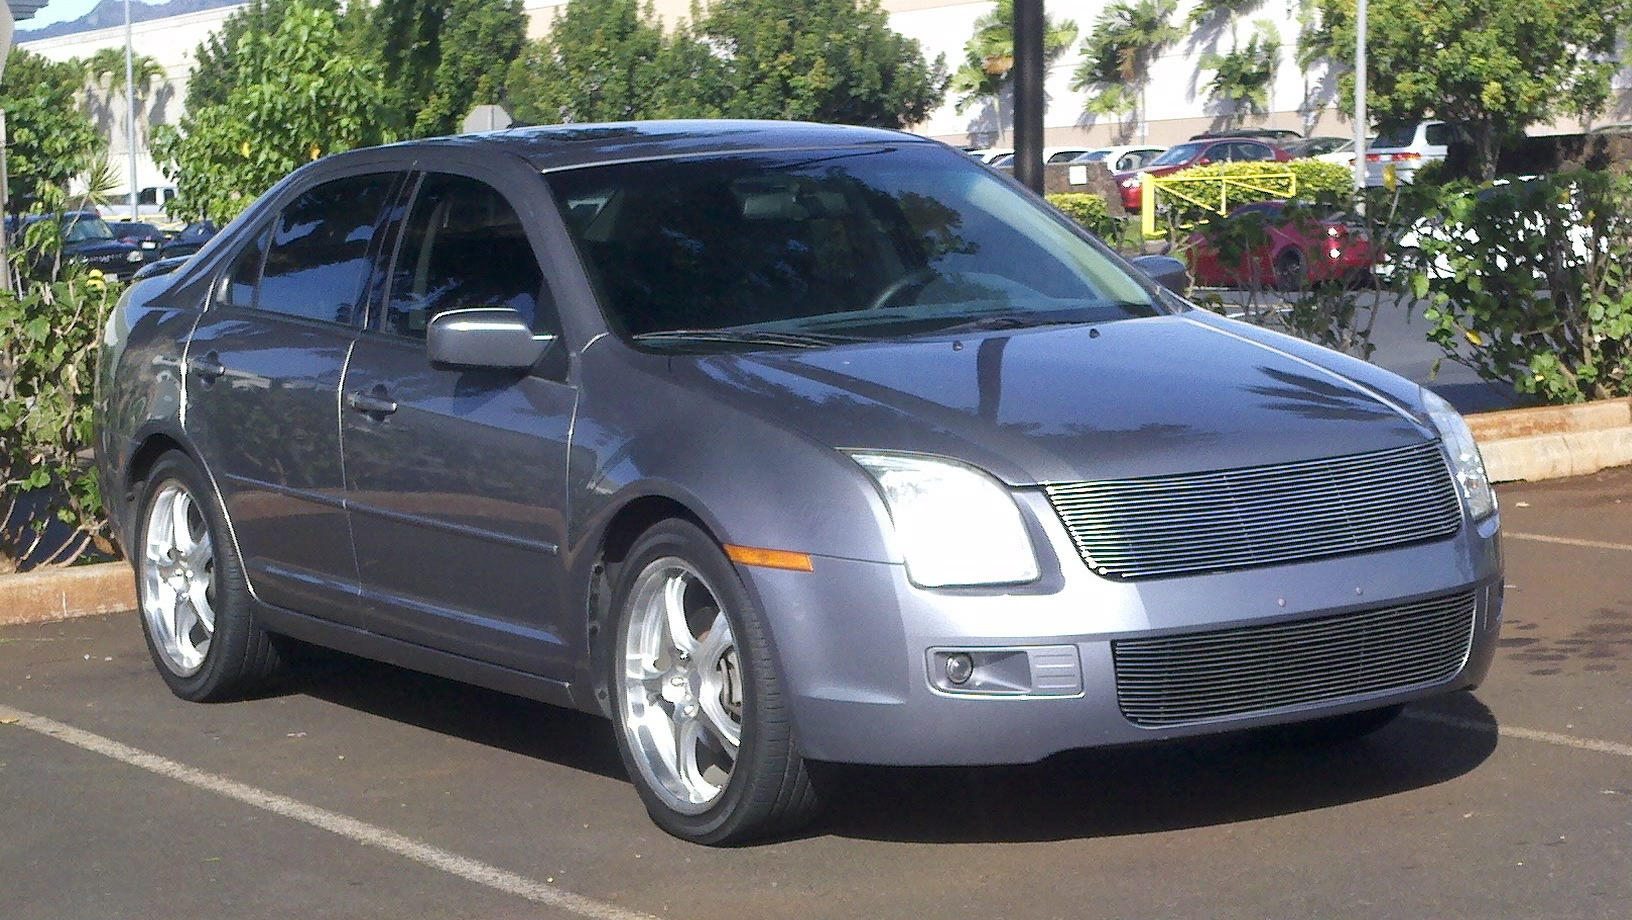 Ford Fusion Mods >> nell808 2007 Ford Fusion Specs, Photos, Modification Info ...